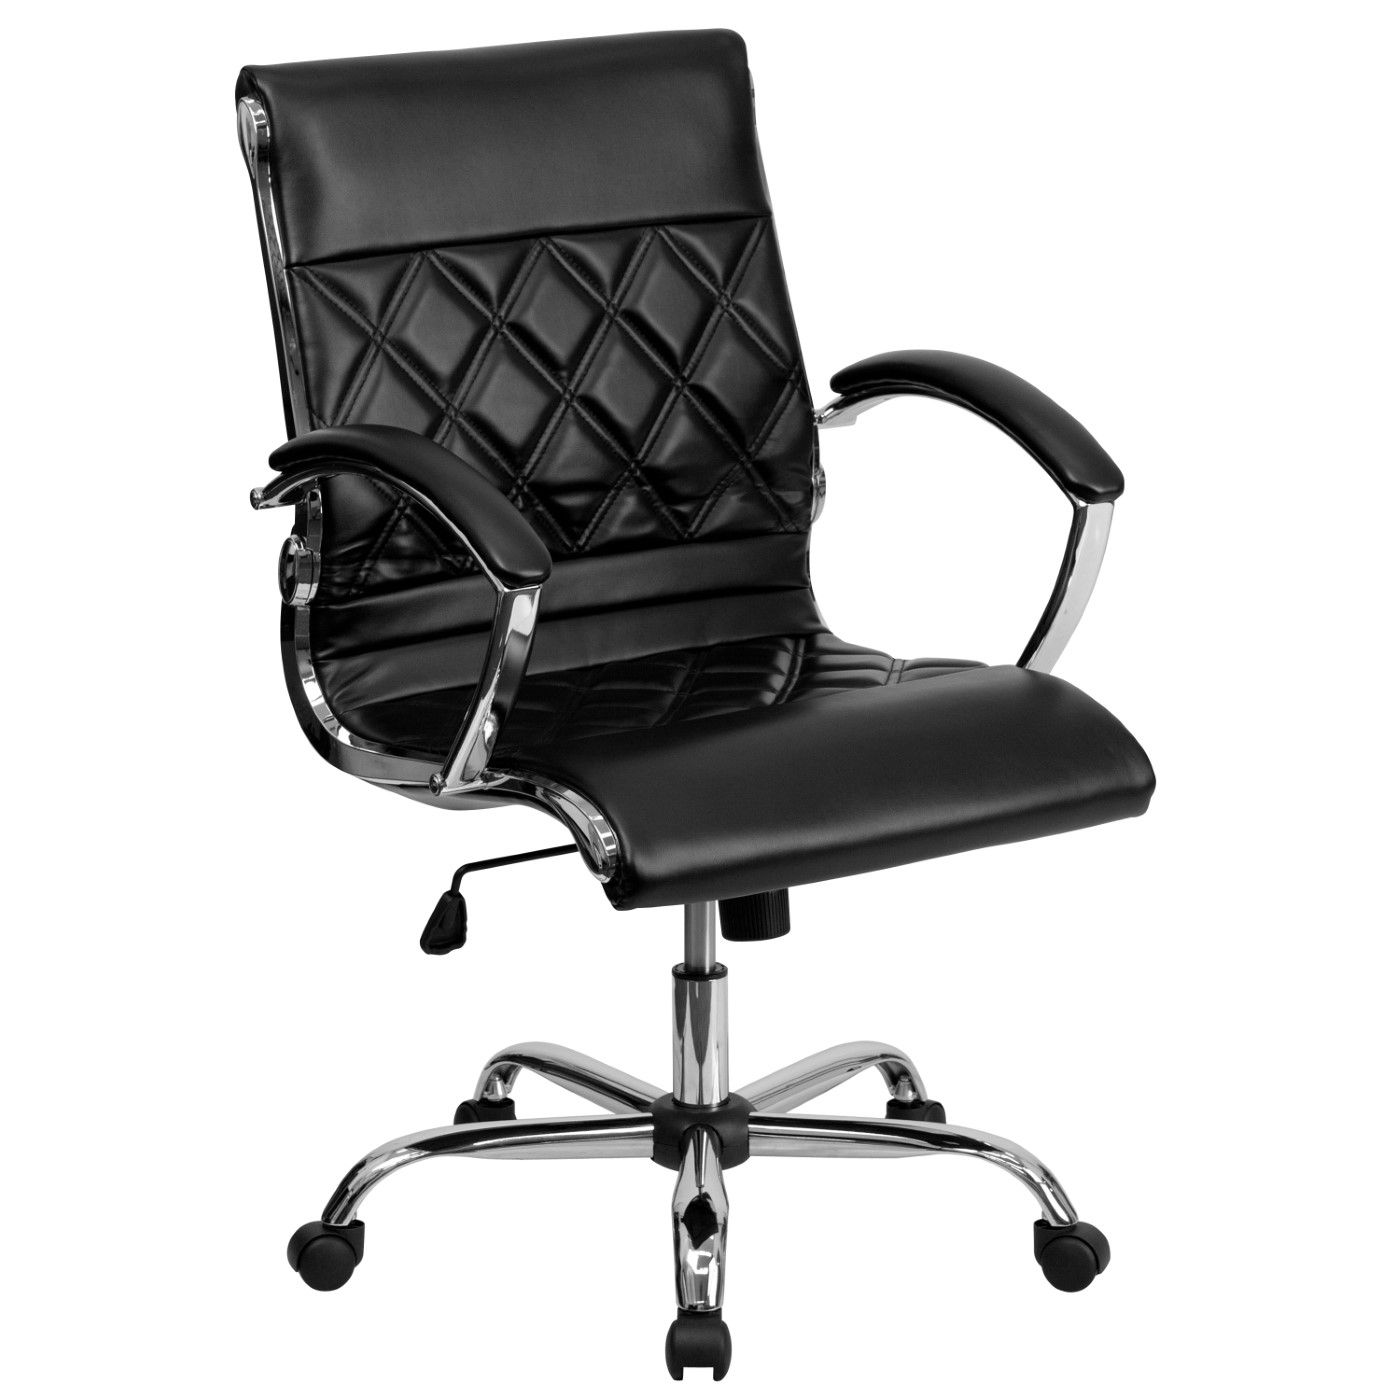 Mid-Back Designer Black LeatherSoft Executive Swivel Office Chair with Chrome Base and Arms